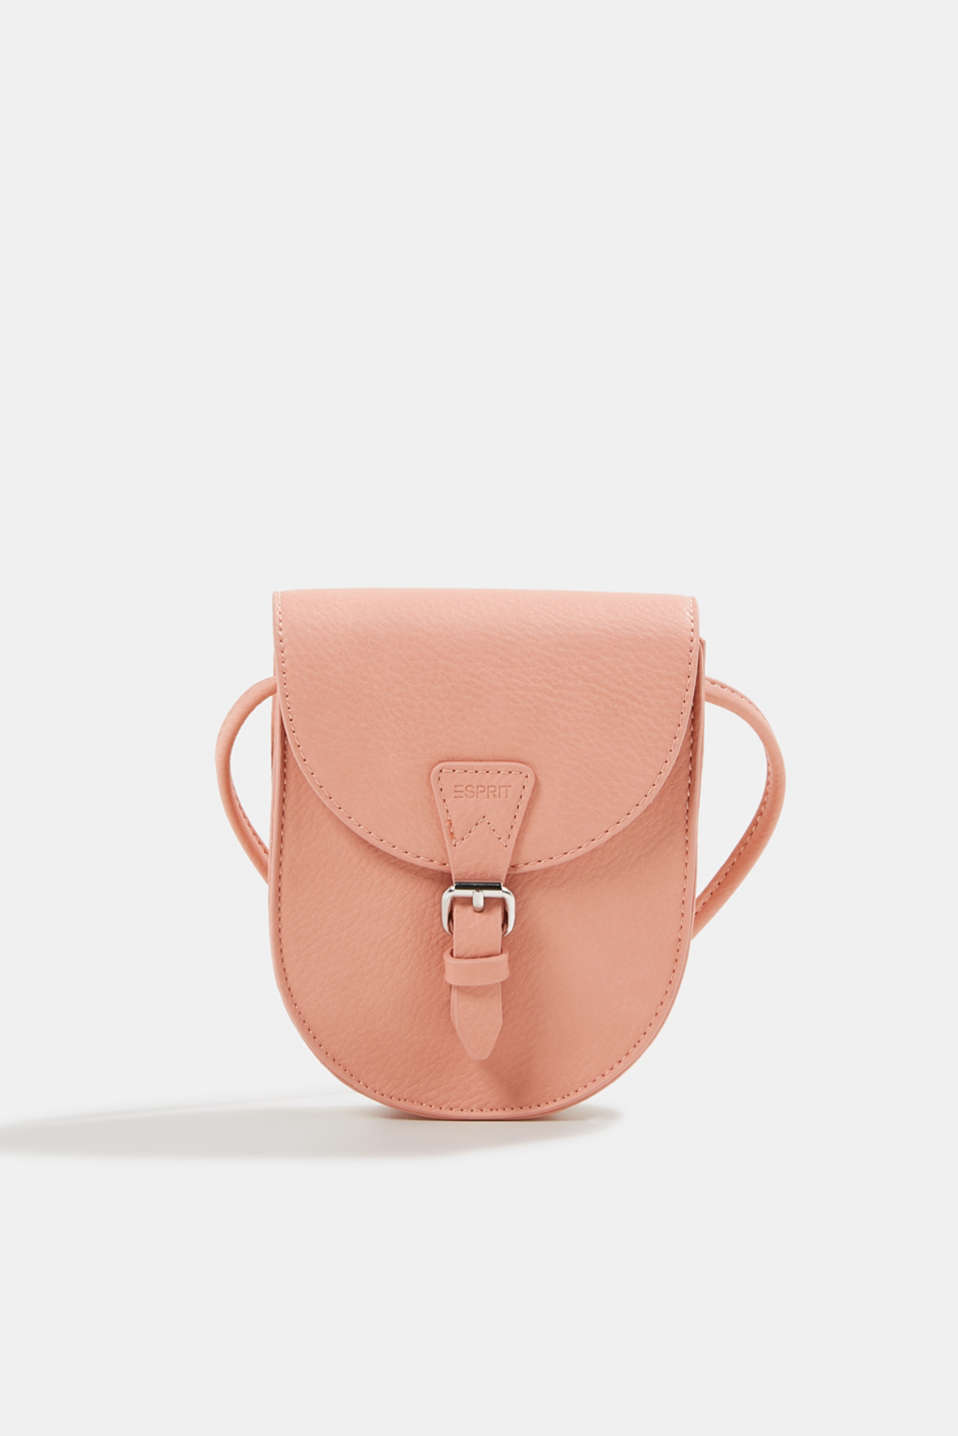 Esprit - Susie T. range: Mini bag, vegan